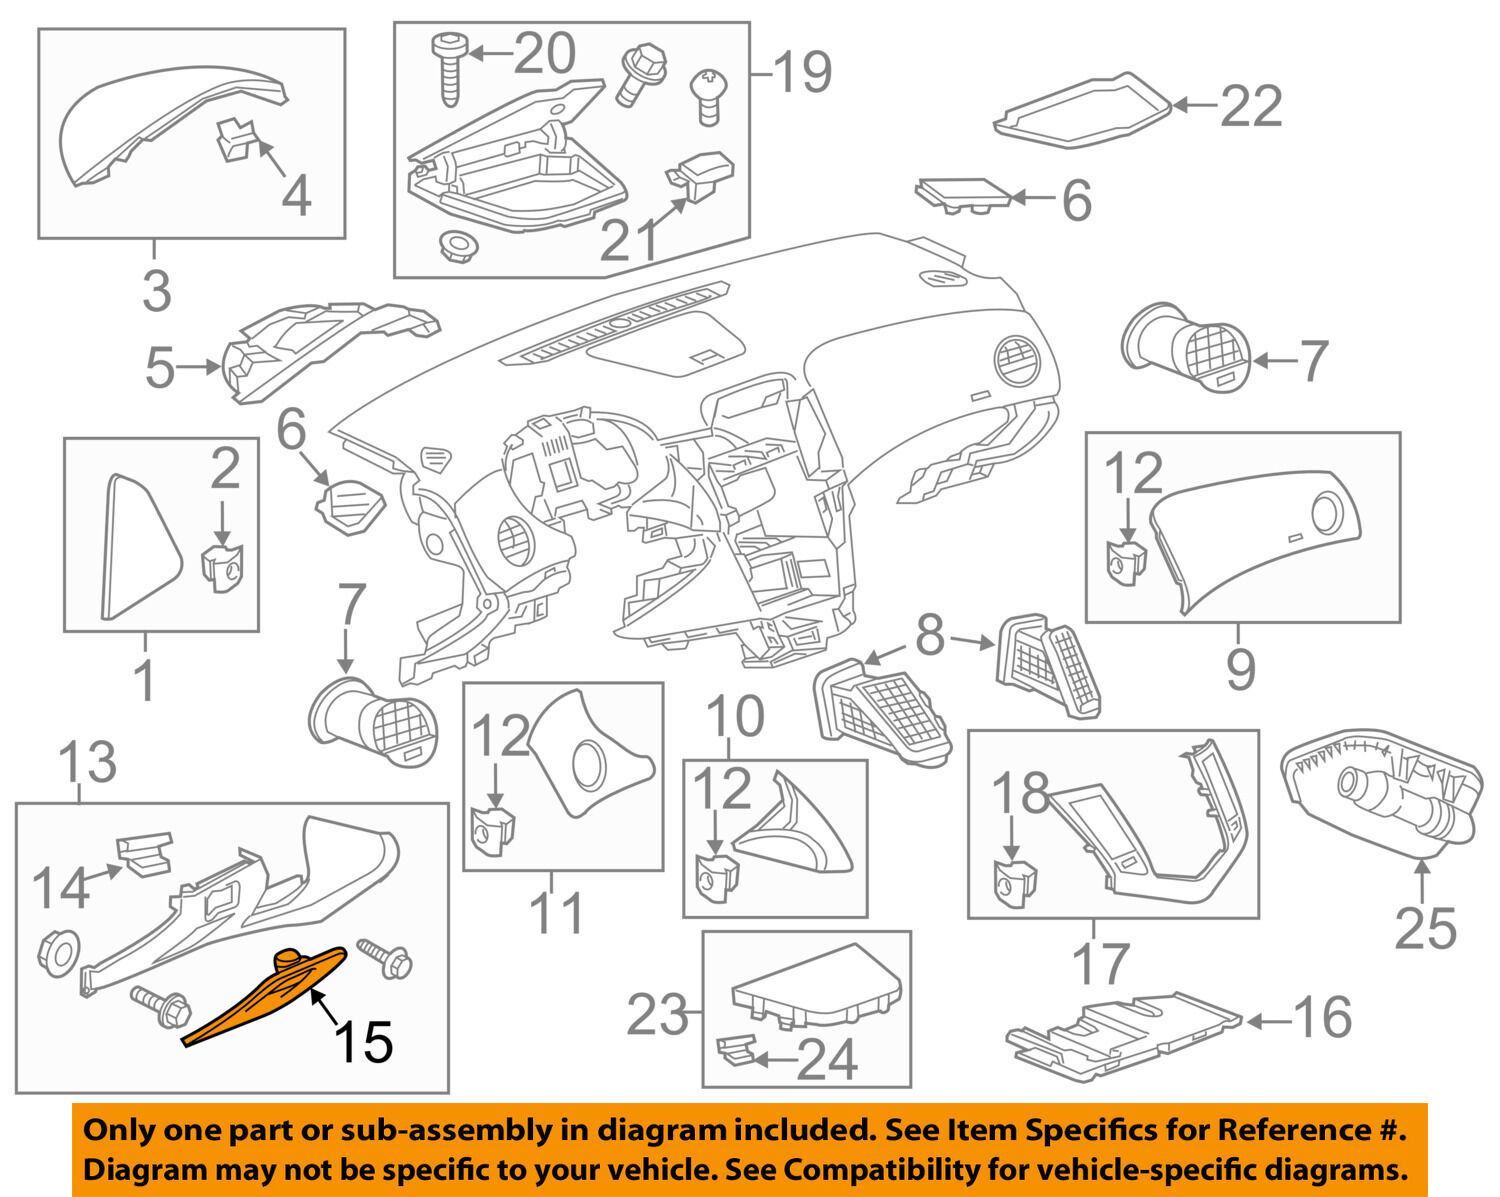 Chevrolet GM OEM 11-15 Cruze Instrument Panel Dash-Fuse Box Cover 95912938  1 of 2Only 0 available See More